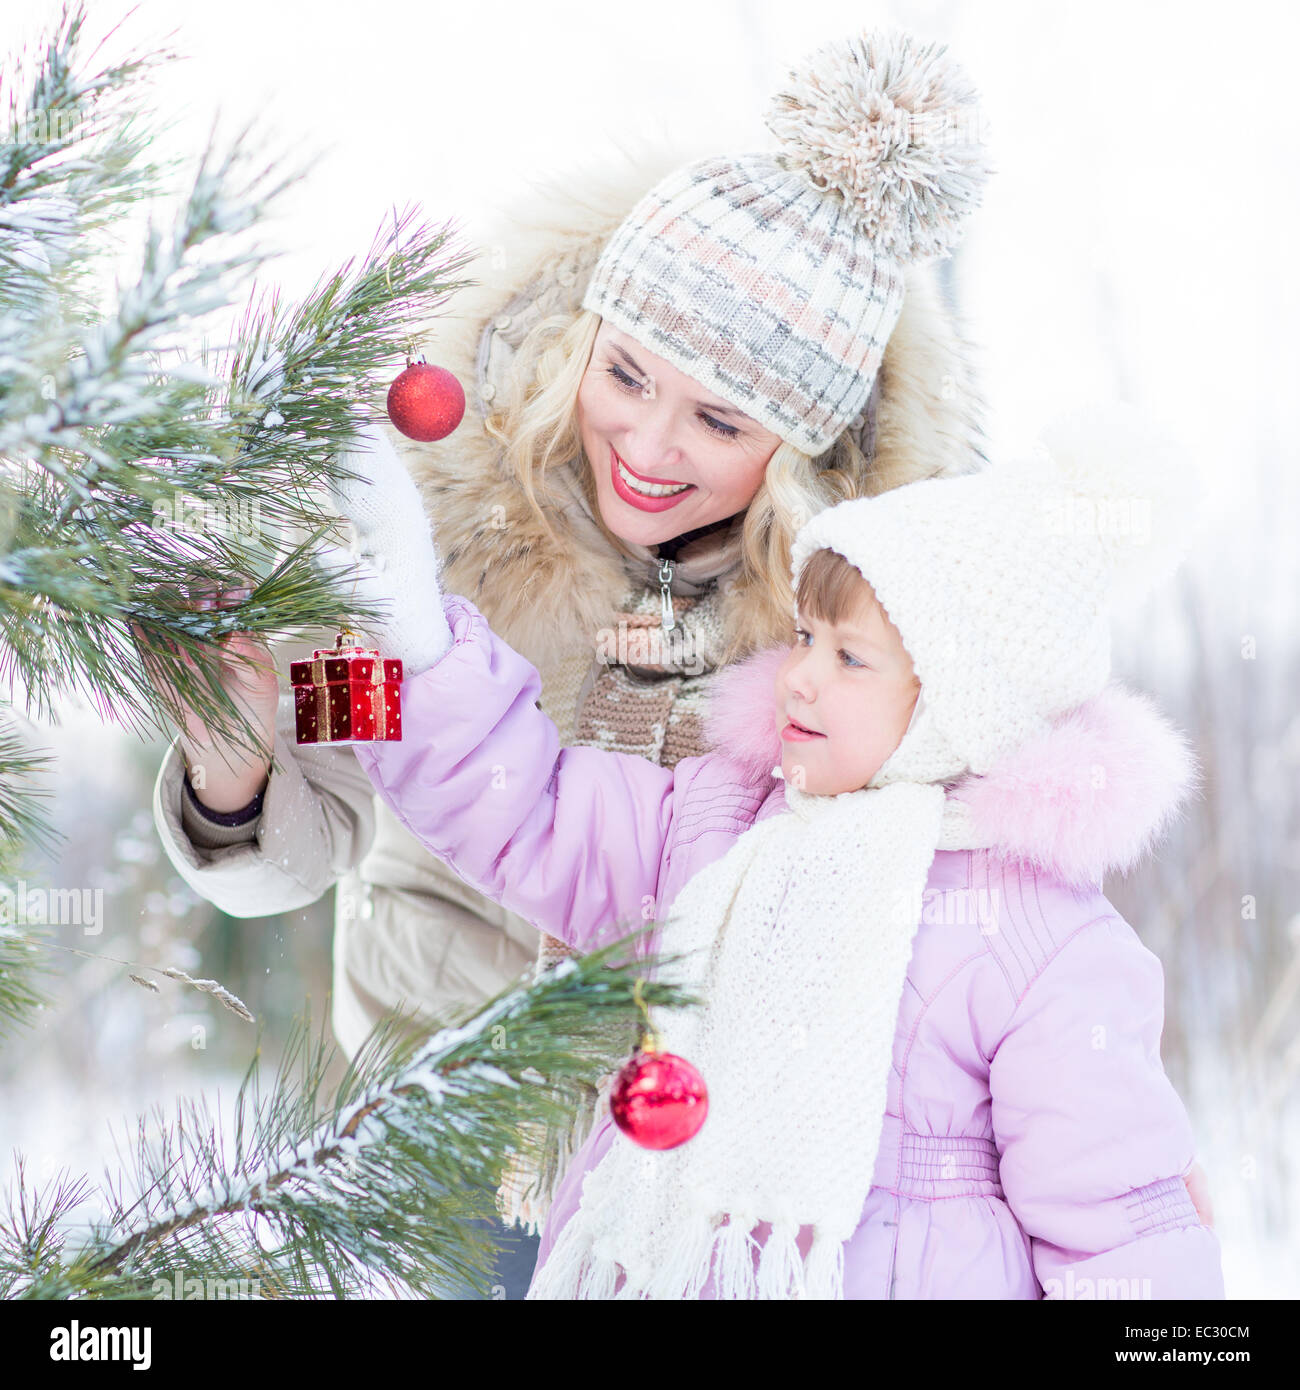 Happy mother and child decorating christmas tree outdoor wintertime - Stock Image